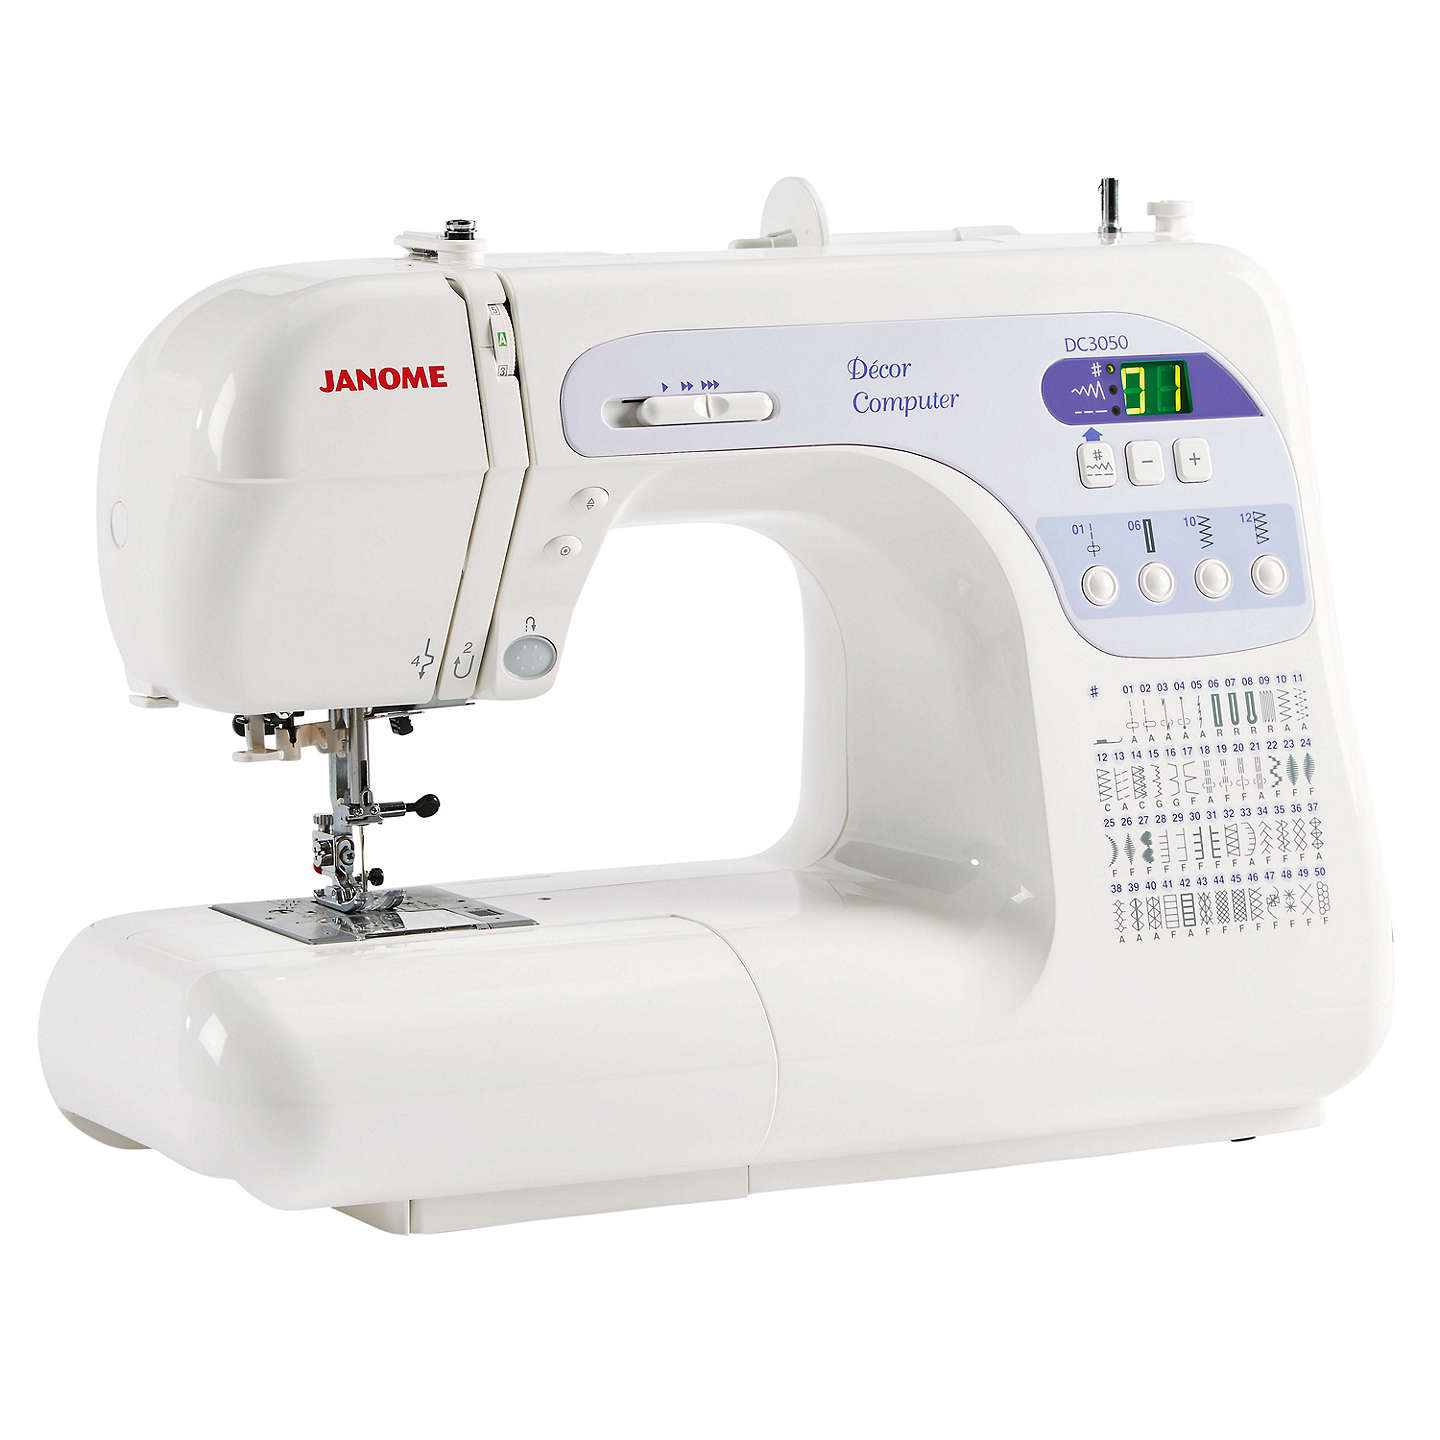 BuyJanome DC3050 Sewing Machine Online at johnlewis.com